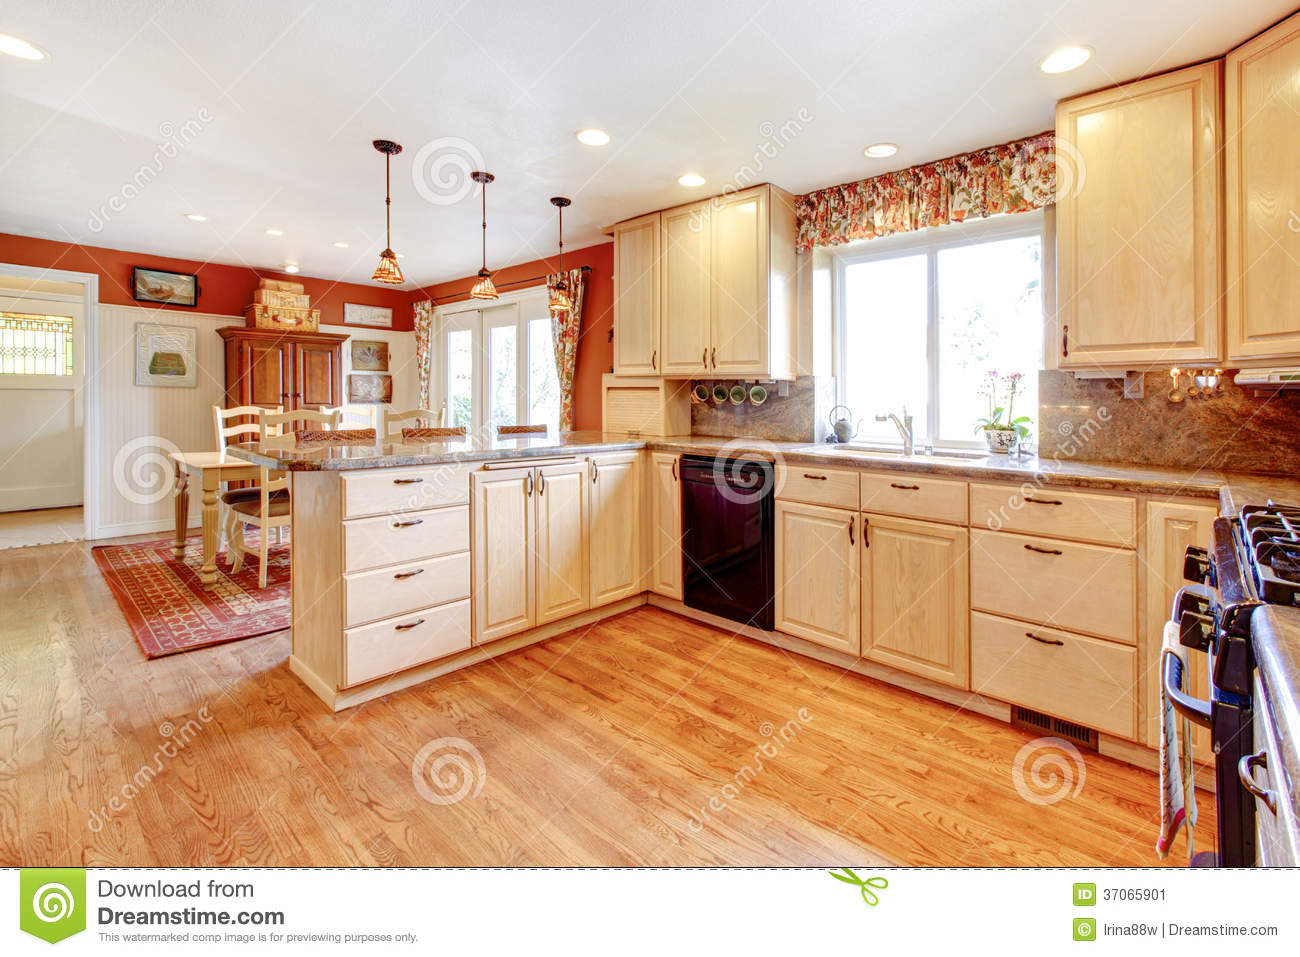 Simple Warm Colors Kitchen Room With A Small Dining Area ...